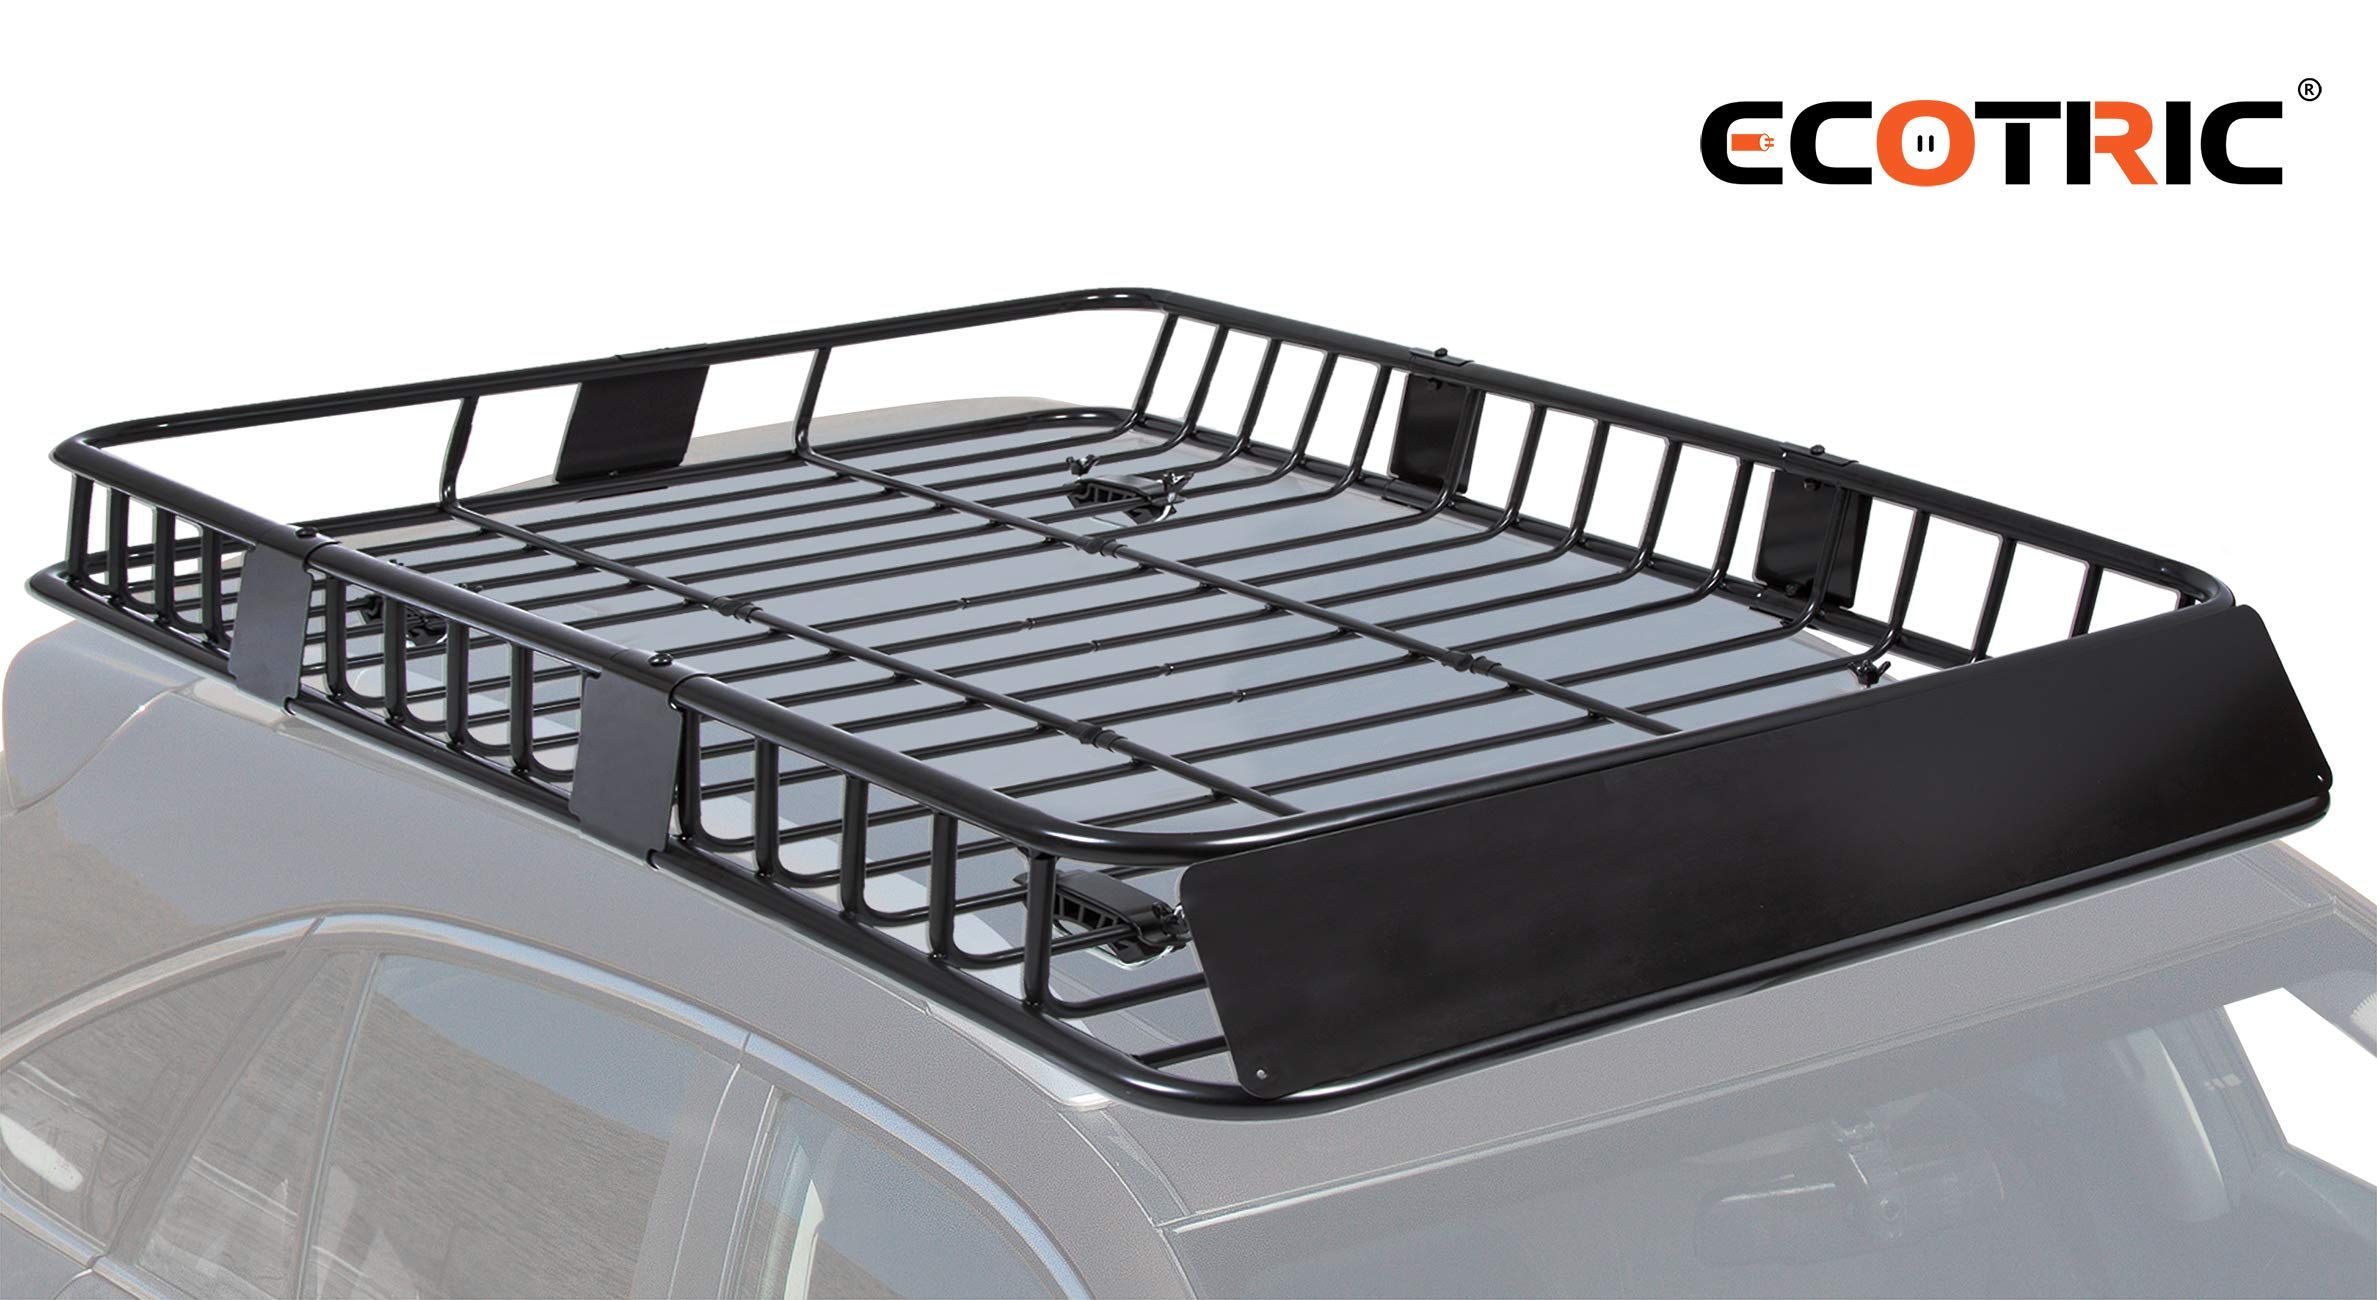 """ECOTRIC 64"""" Universal Black Roof Rack Cargo Carrier Car Top Luggage Holder with Extension Carrier Basket SUV Storage for Travel"""